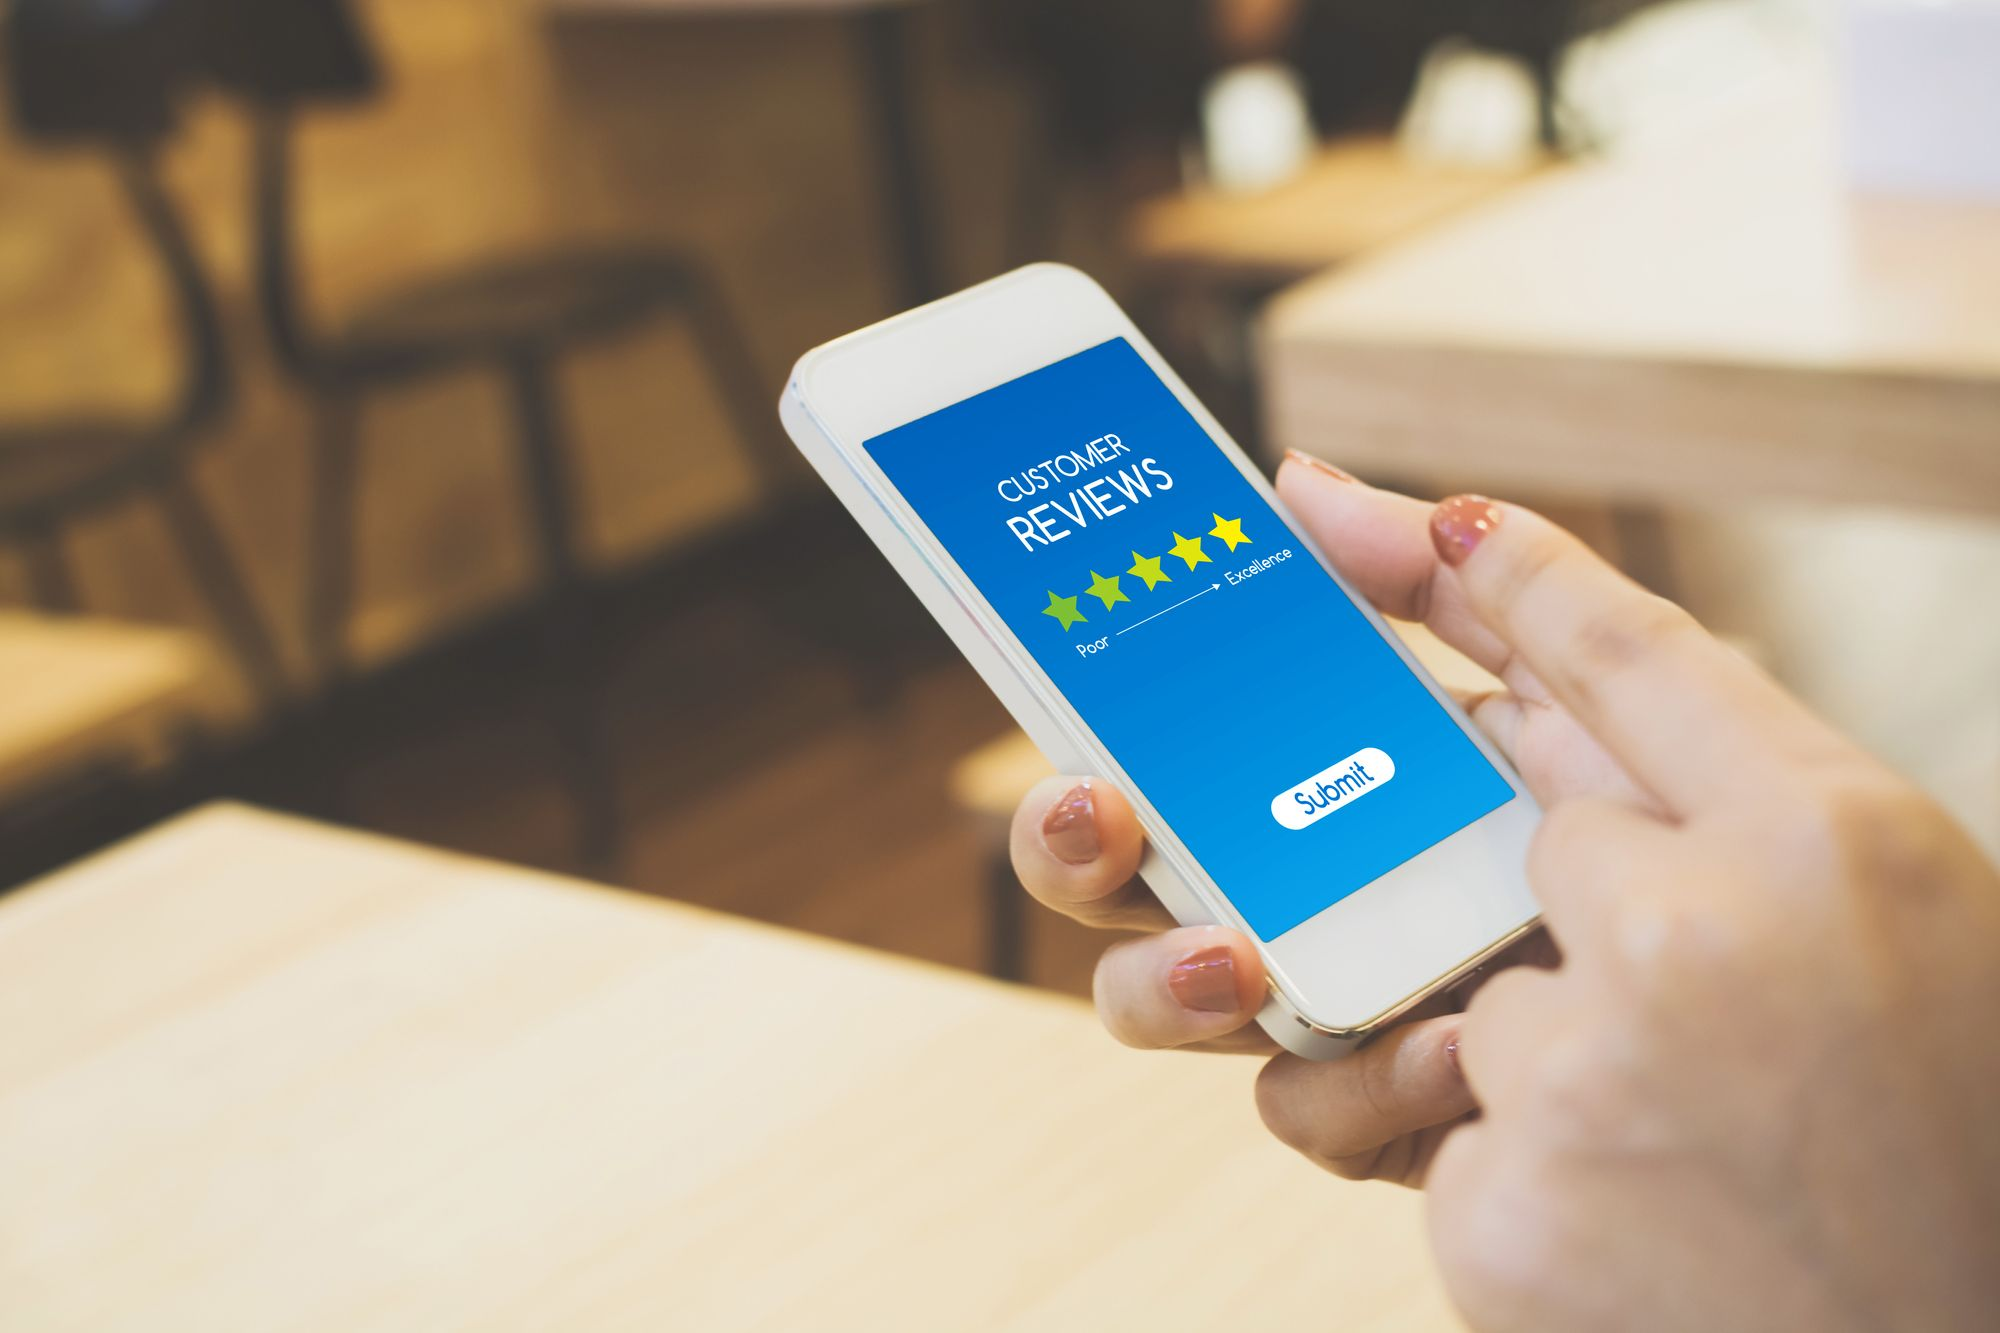 Still Avoiding Online Reviews? 4 Tips to Use Them to Your Advantage.